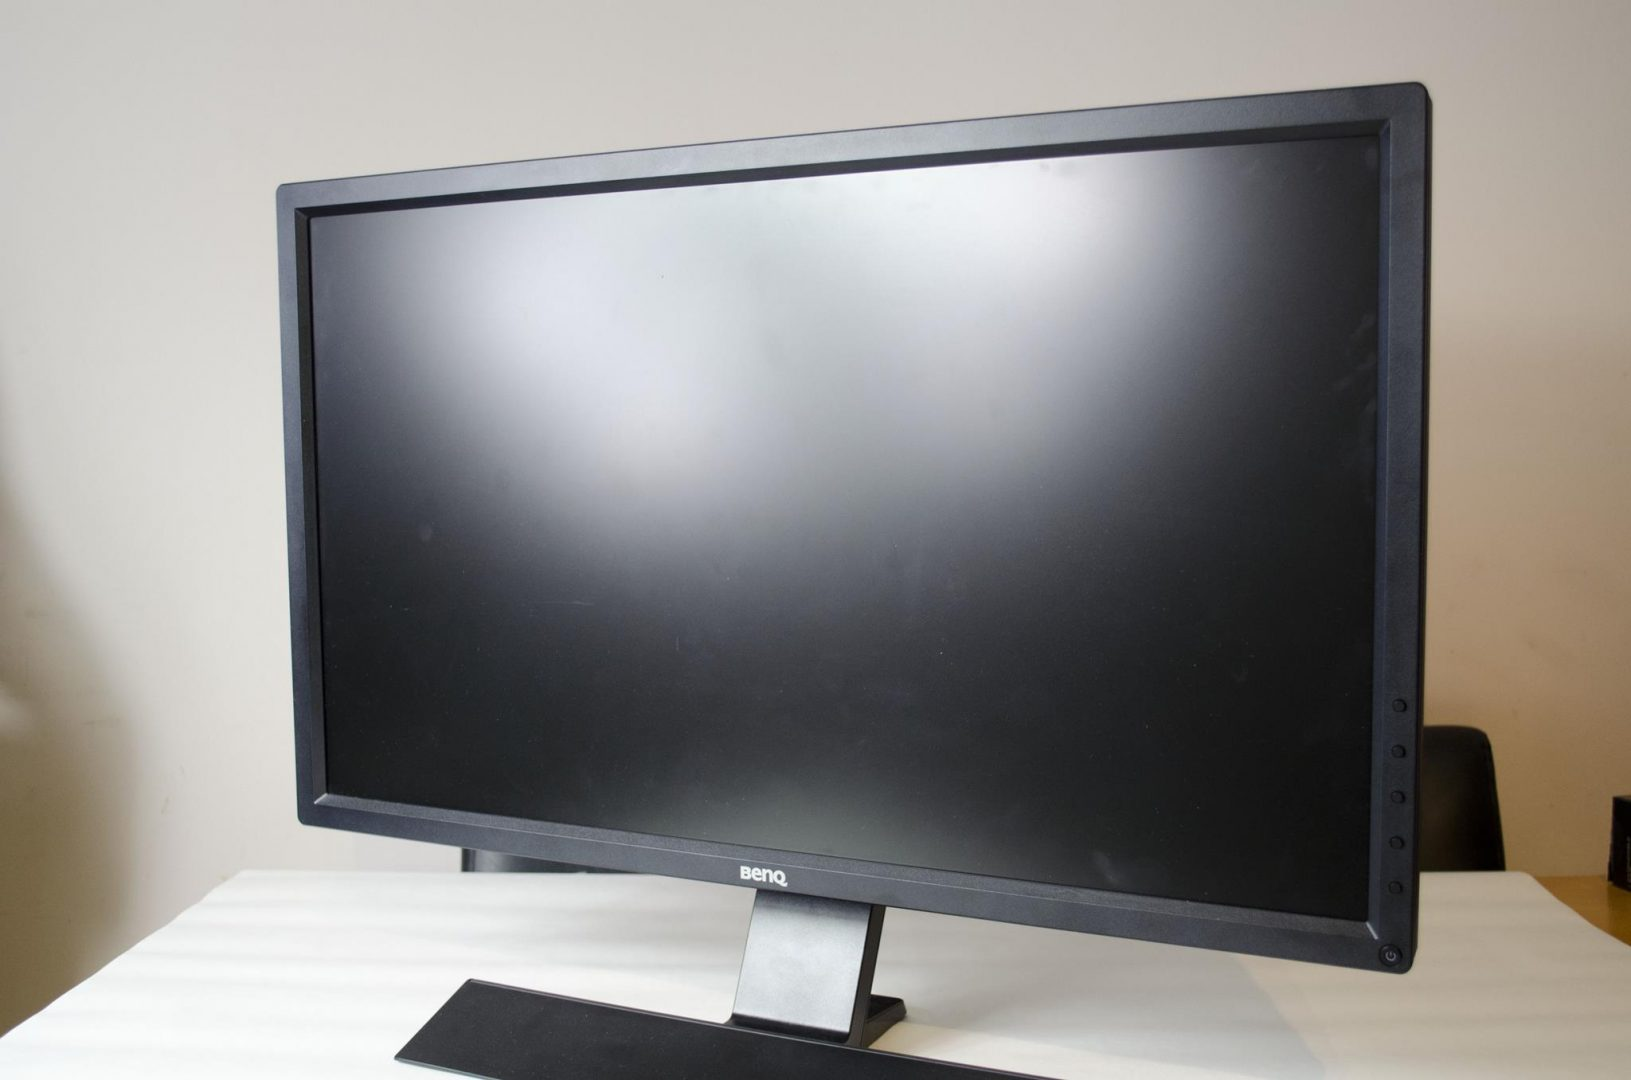 ben q rl2755b monitor review